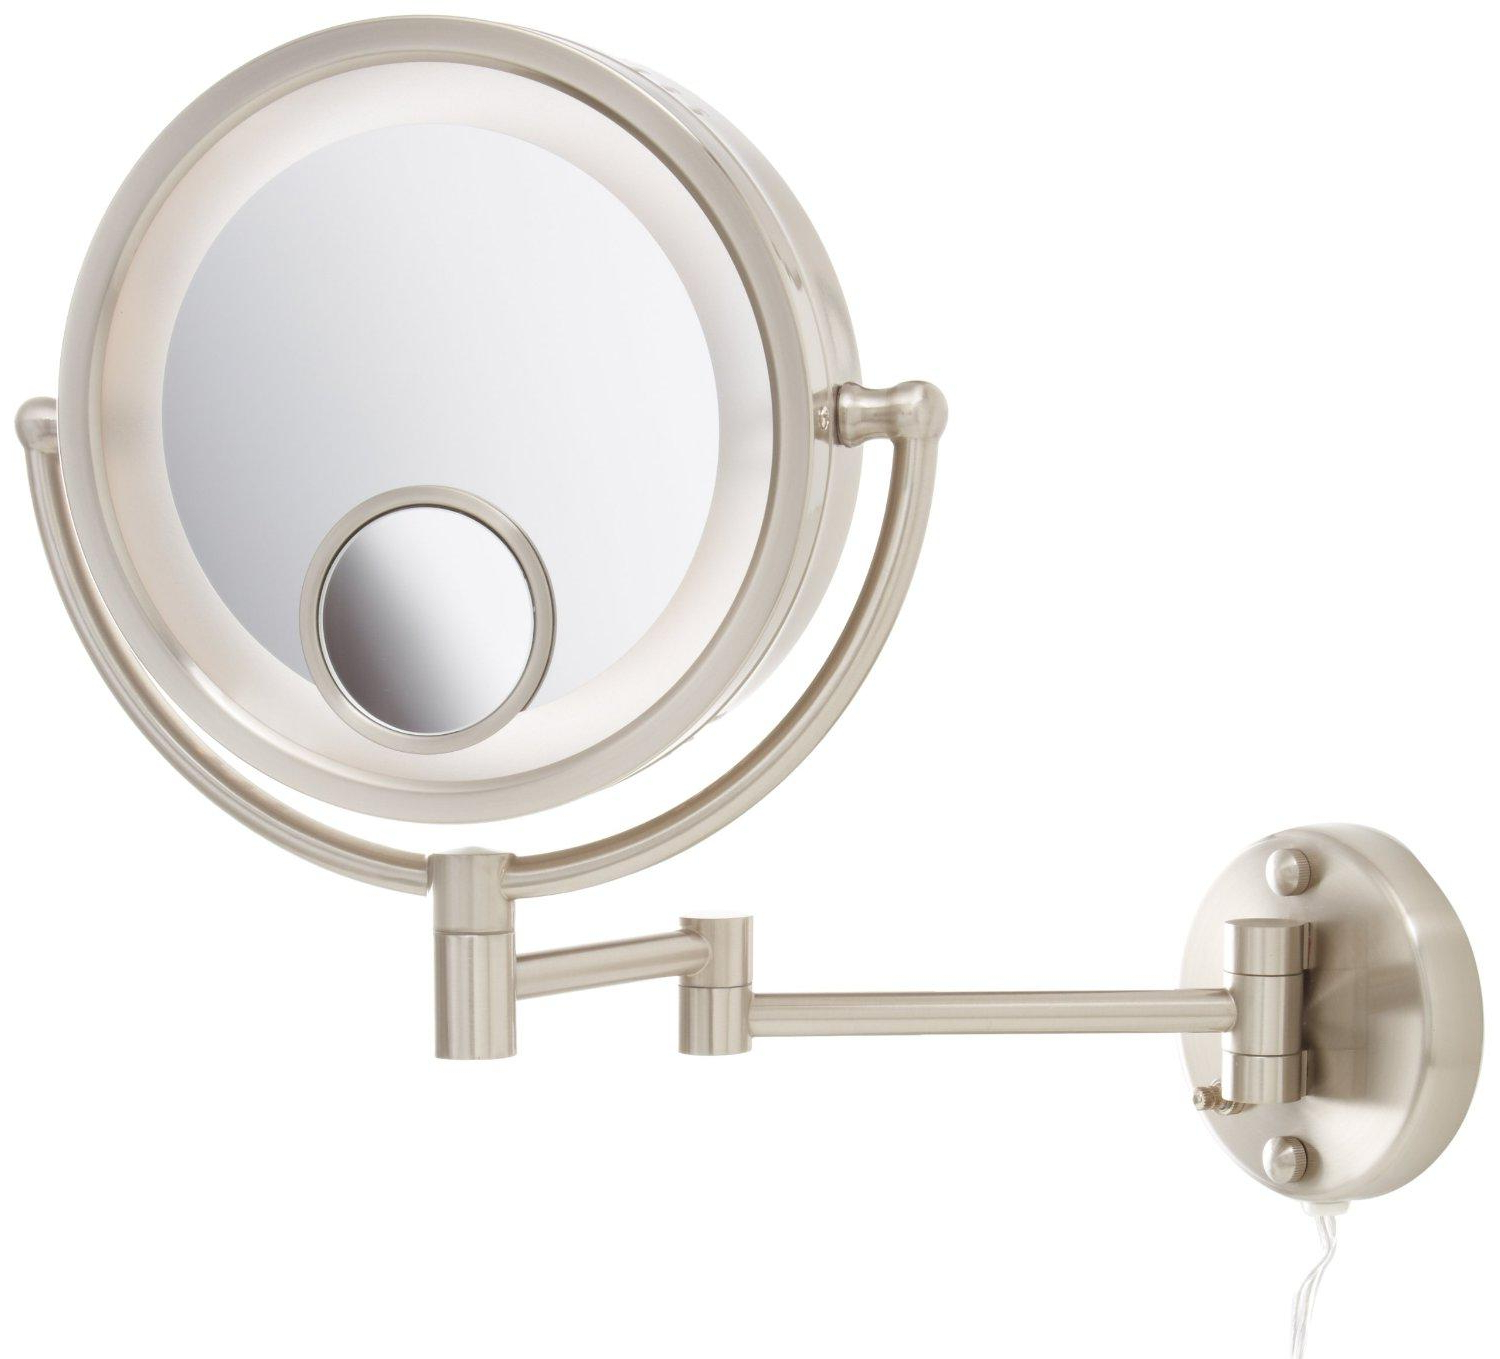 Best And Newest Swivel Wall Mirrors Inside Jerdon Hl8515n Lighted Wall Mount Makeup Mirror With 7x And 15x Magnification, Nickel Finish, (View 3 of 20)